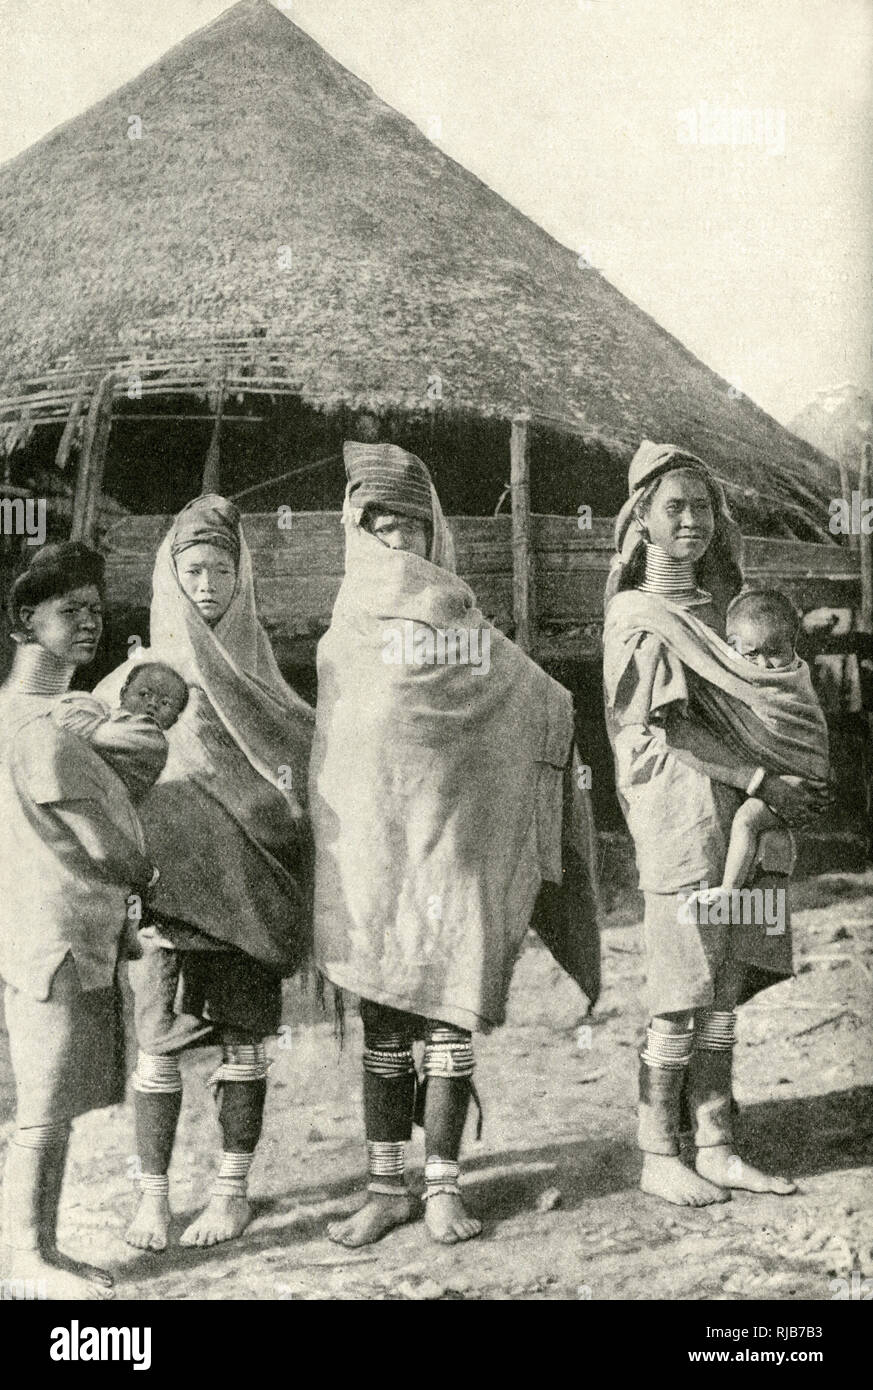 Women of the Padaung (Kayan Lahwi or Lahoi) tribe, Burma (now Myanmar), South East Asia. Two of them can be seen with brass coils round their necks. They are wrapped in blankets because of cold weather. Stock Photo